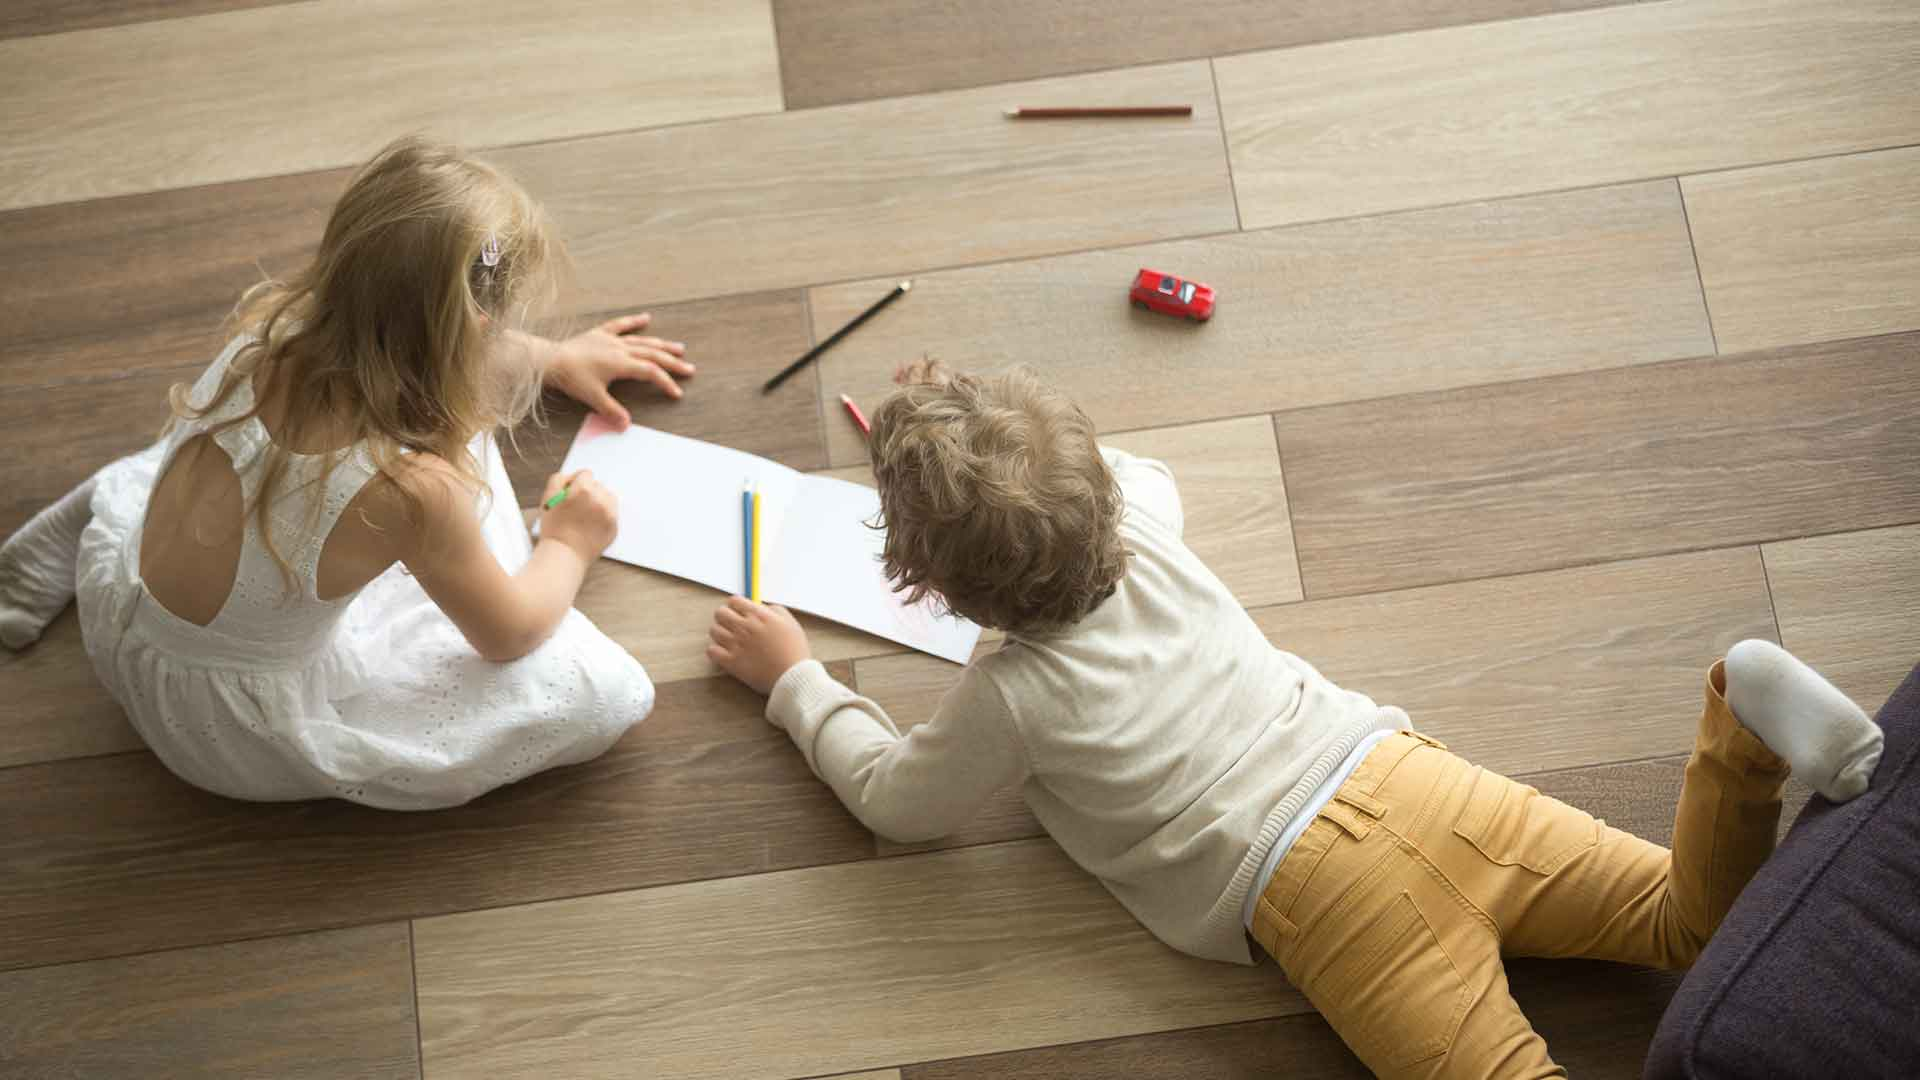 Two children playing contendedly on the floor of a house